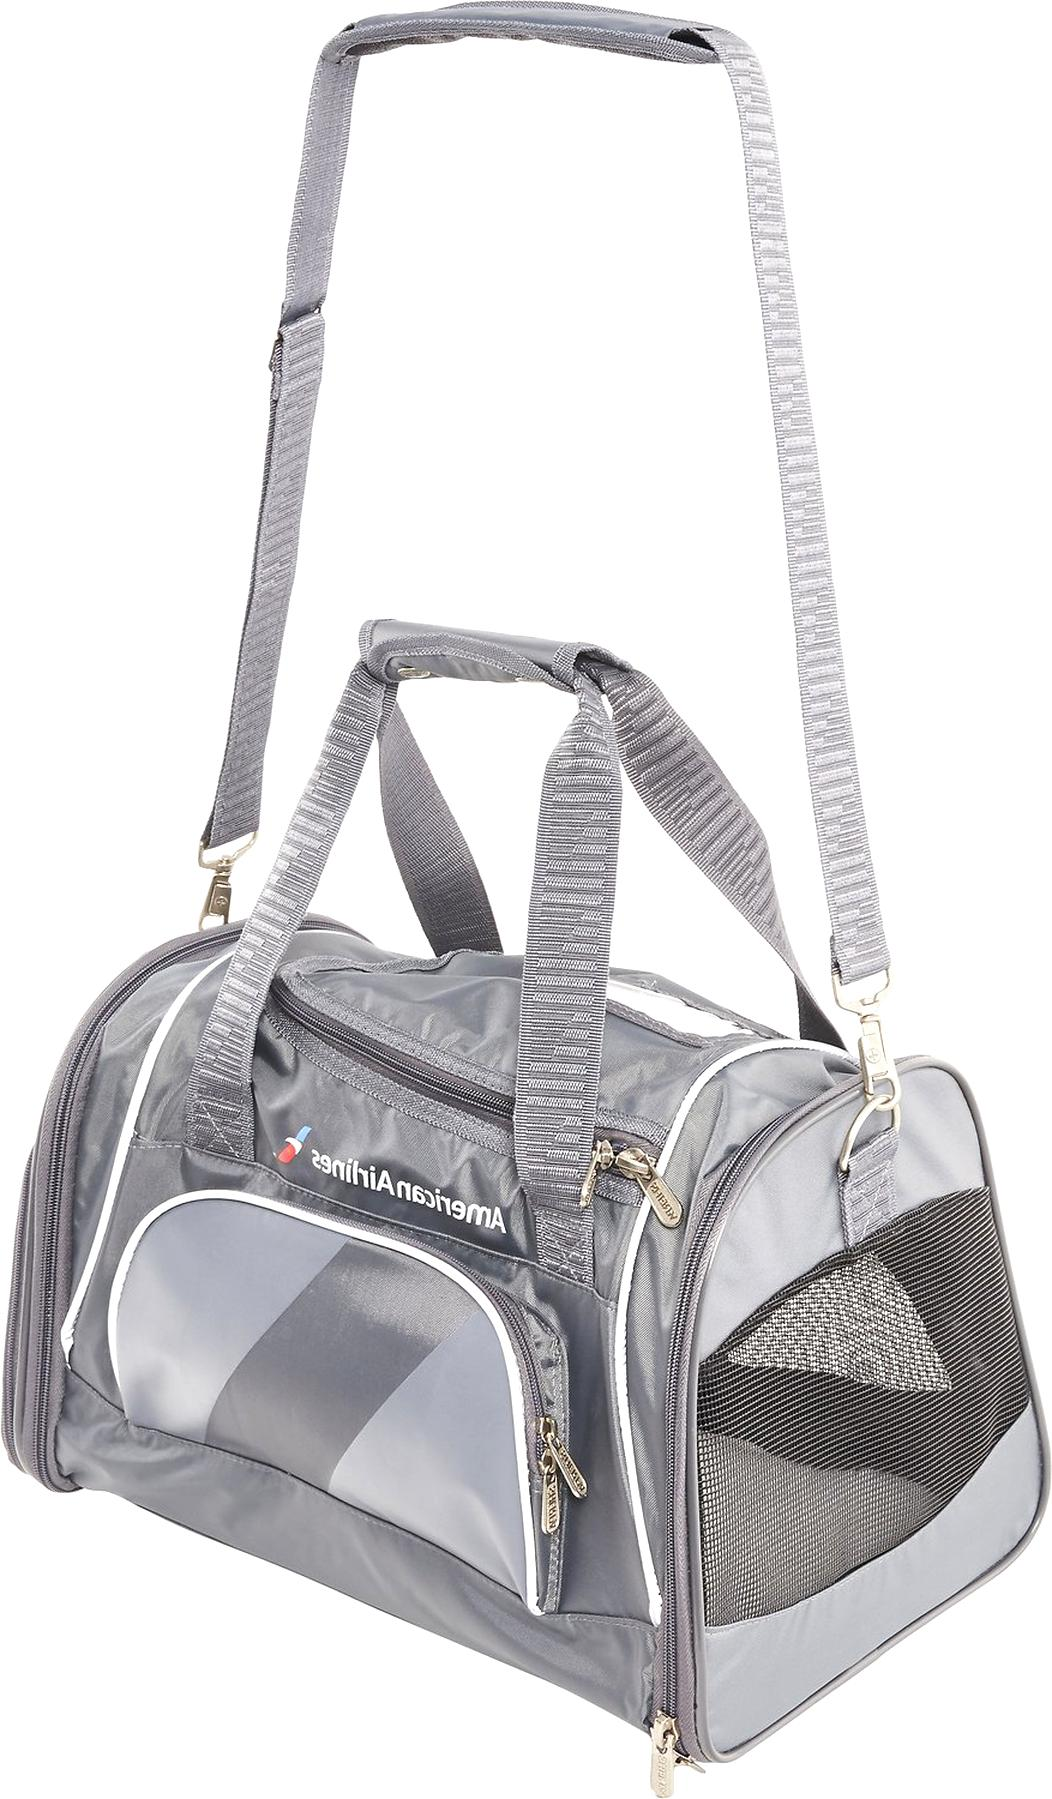 airline pet carrier for sale